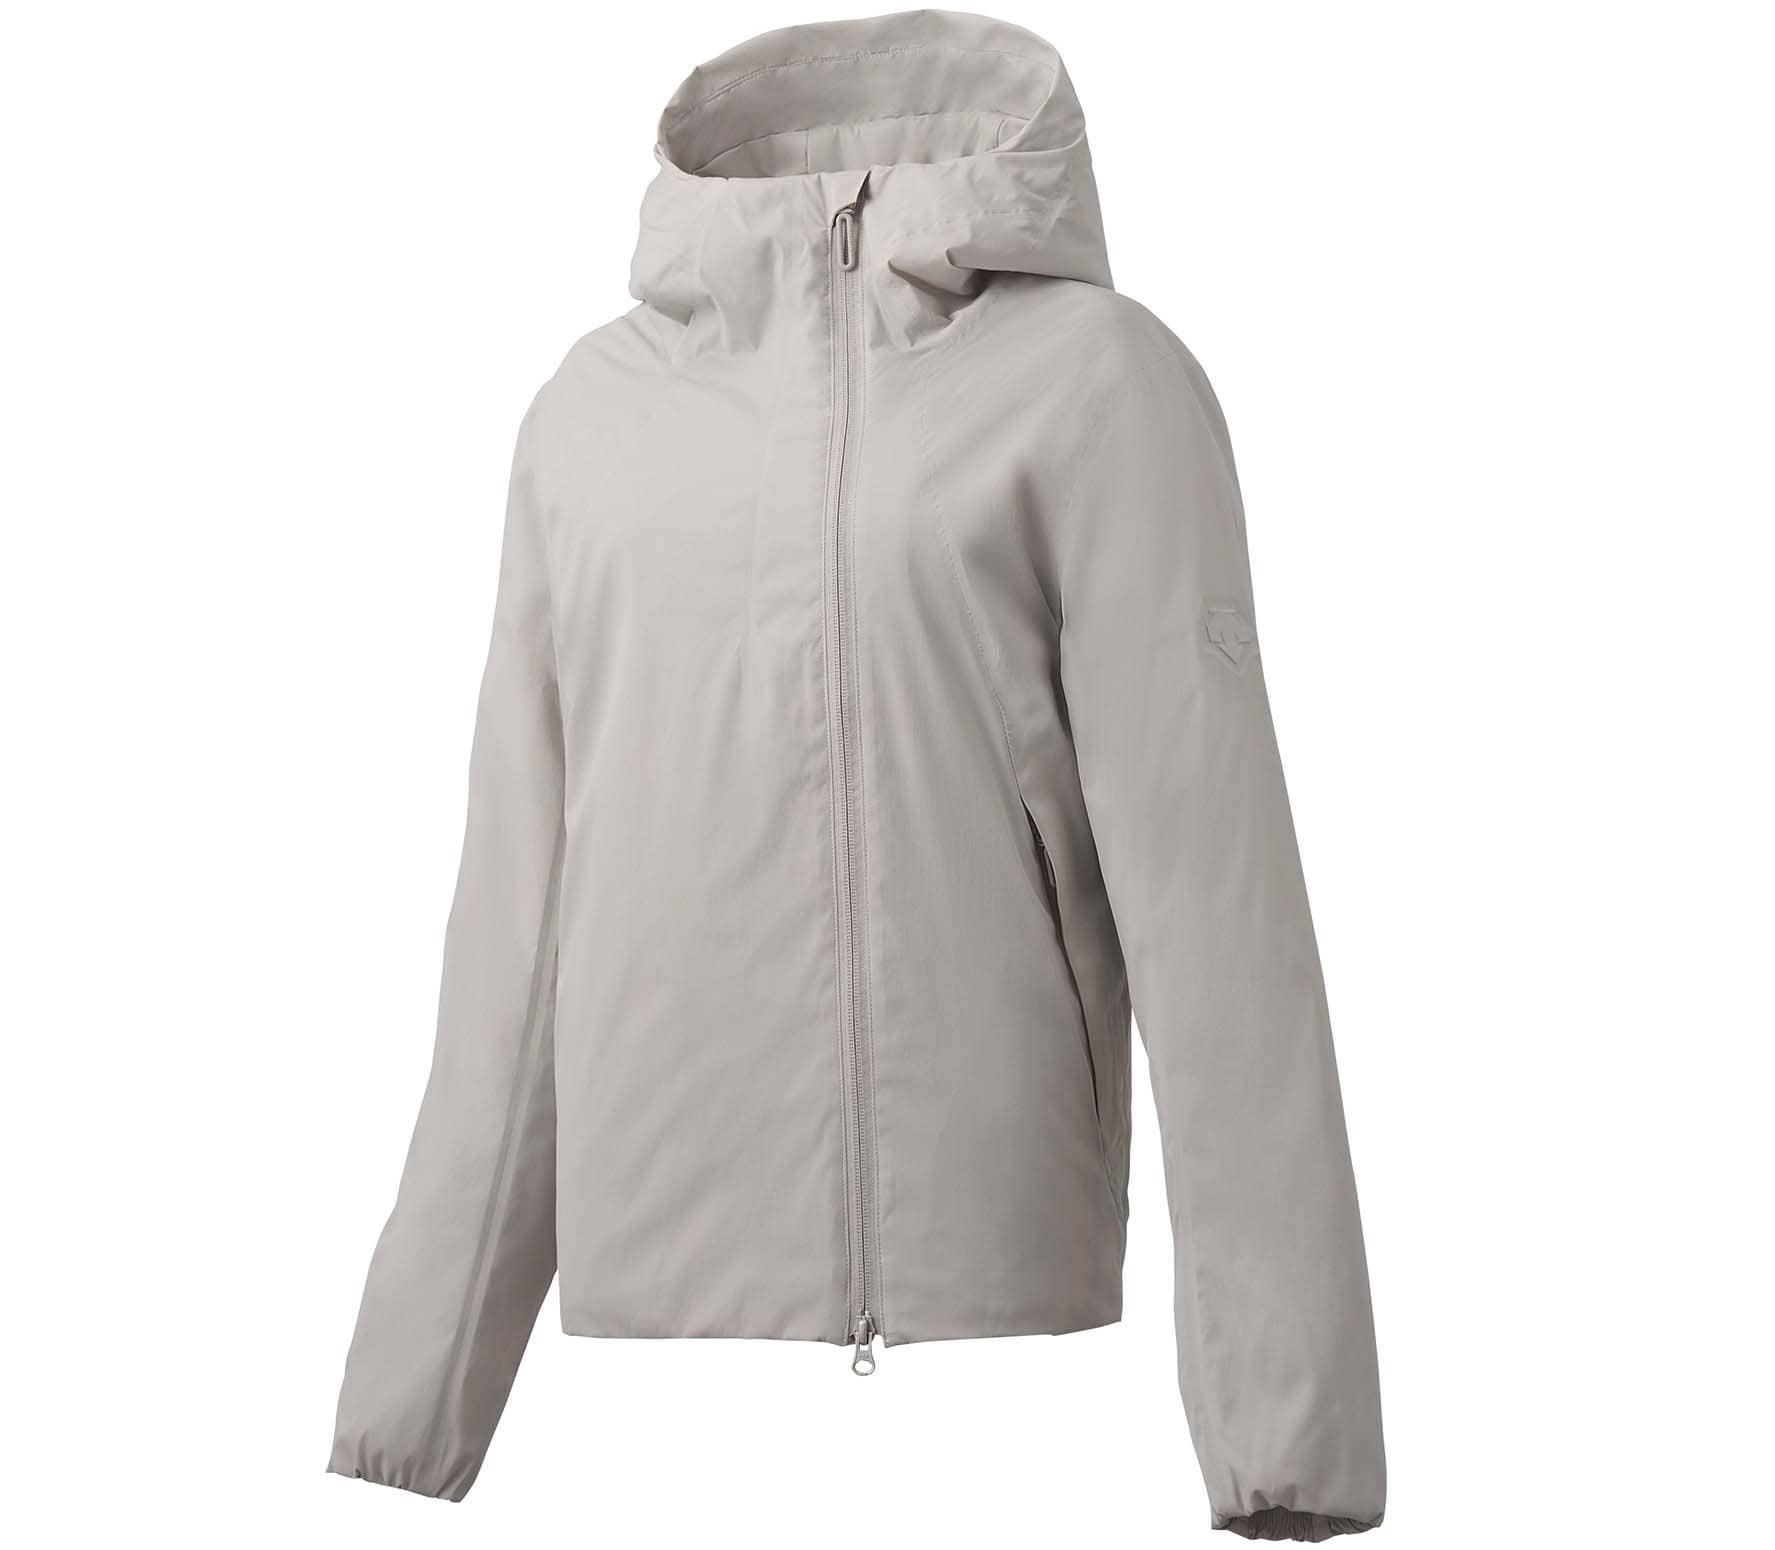 Descente ALLTERRAIN - Perforated Insulation Hooded Dam jacka (beige) - XL